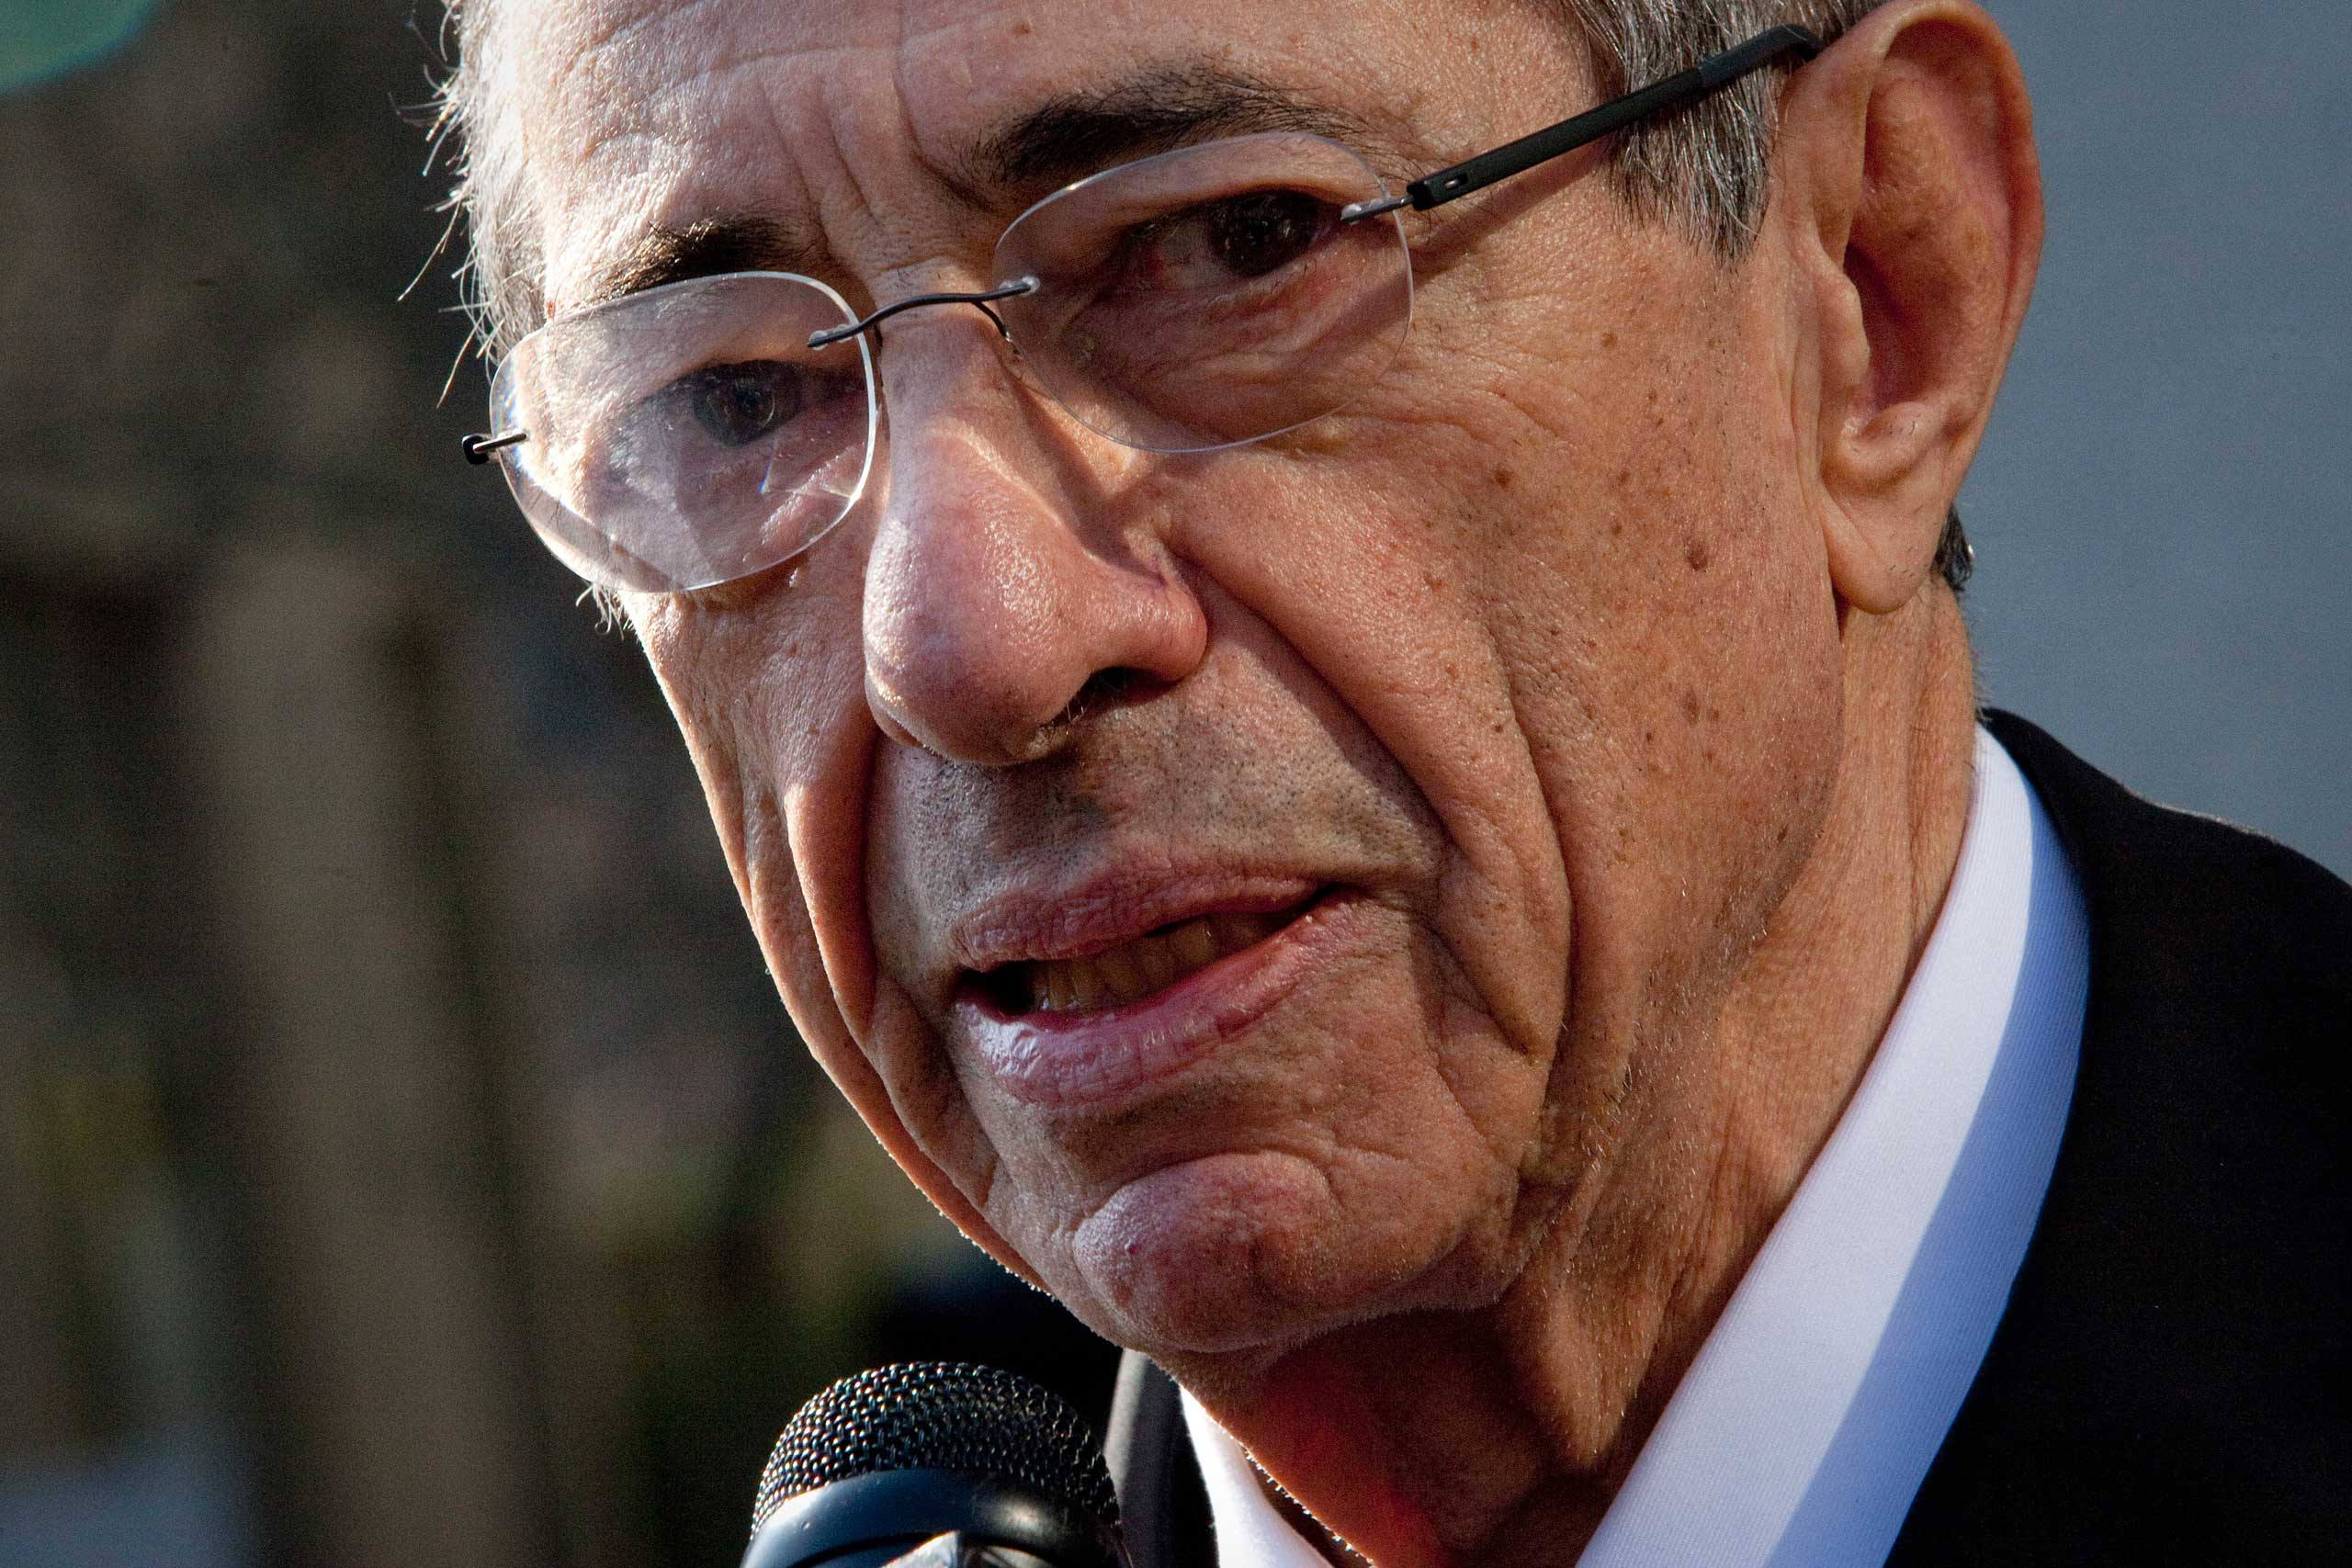 Mario Cuomo, former governor of New York, speaks to media outside of federal court in New York City on March 19, 2012.